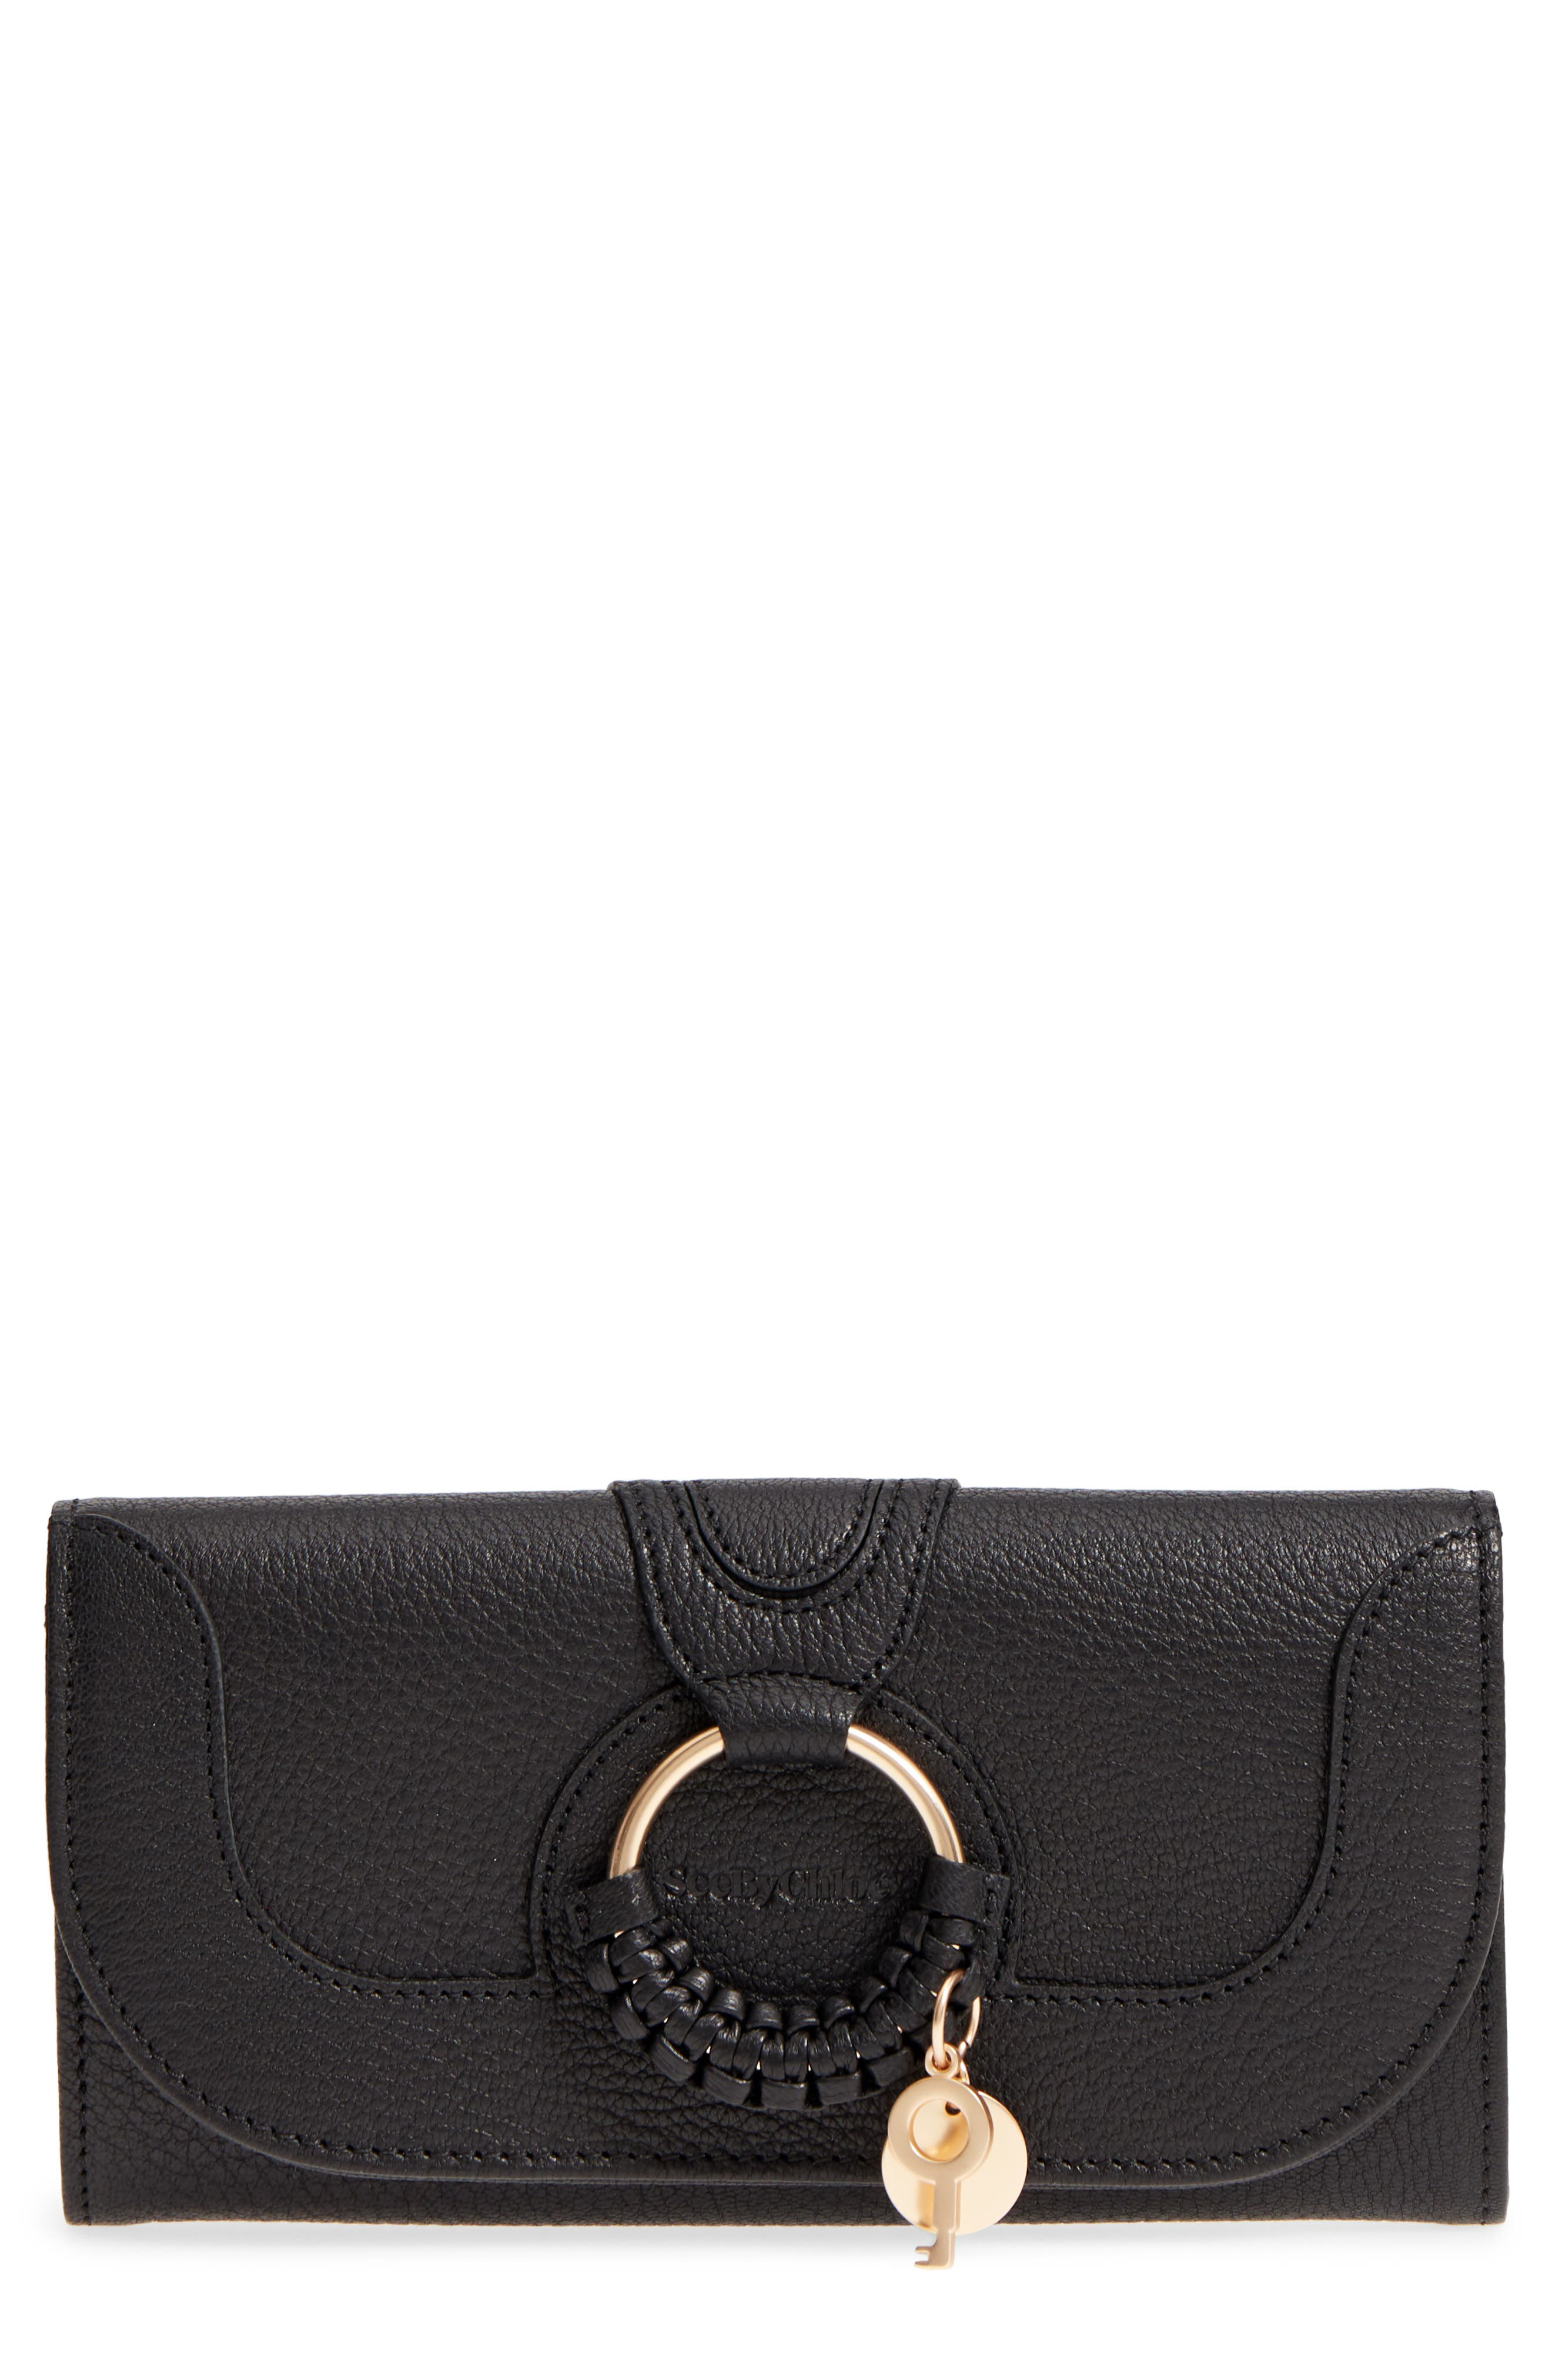 SEE BY CHLOÉ Hana Large Leather Wallet, Main, color, 001